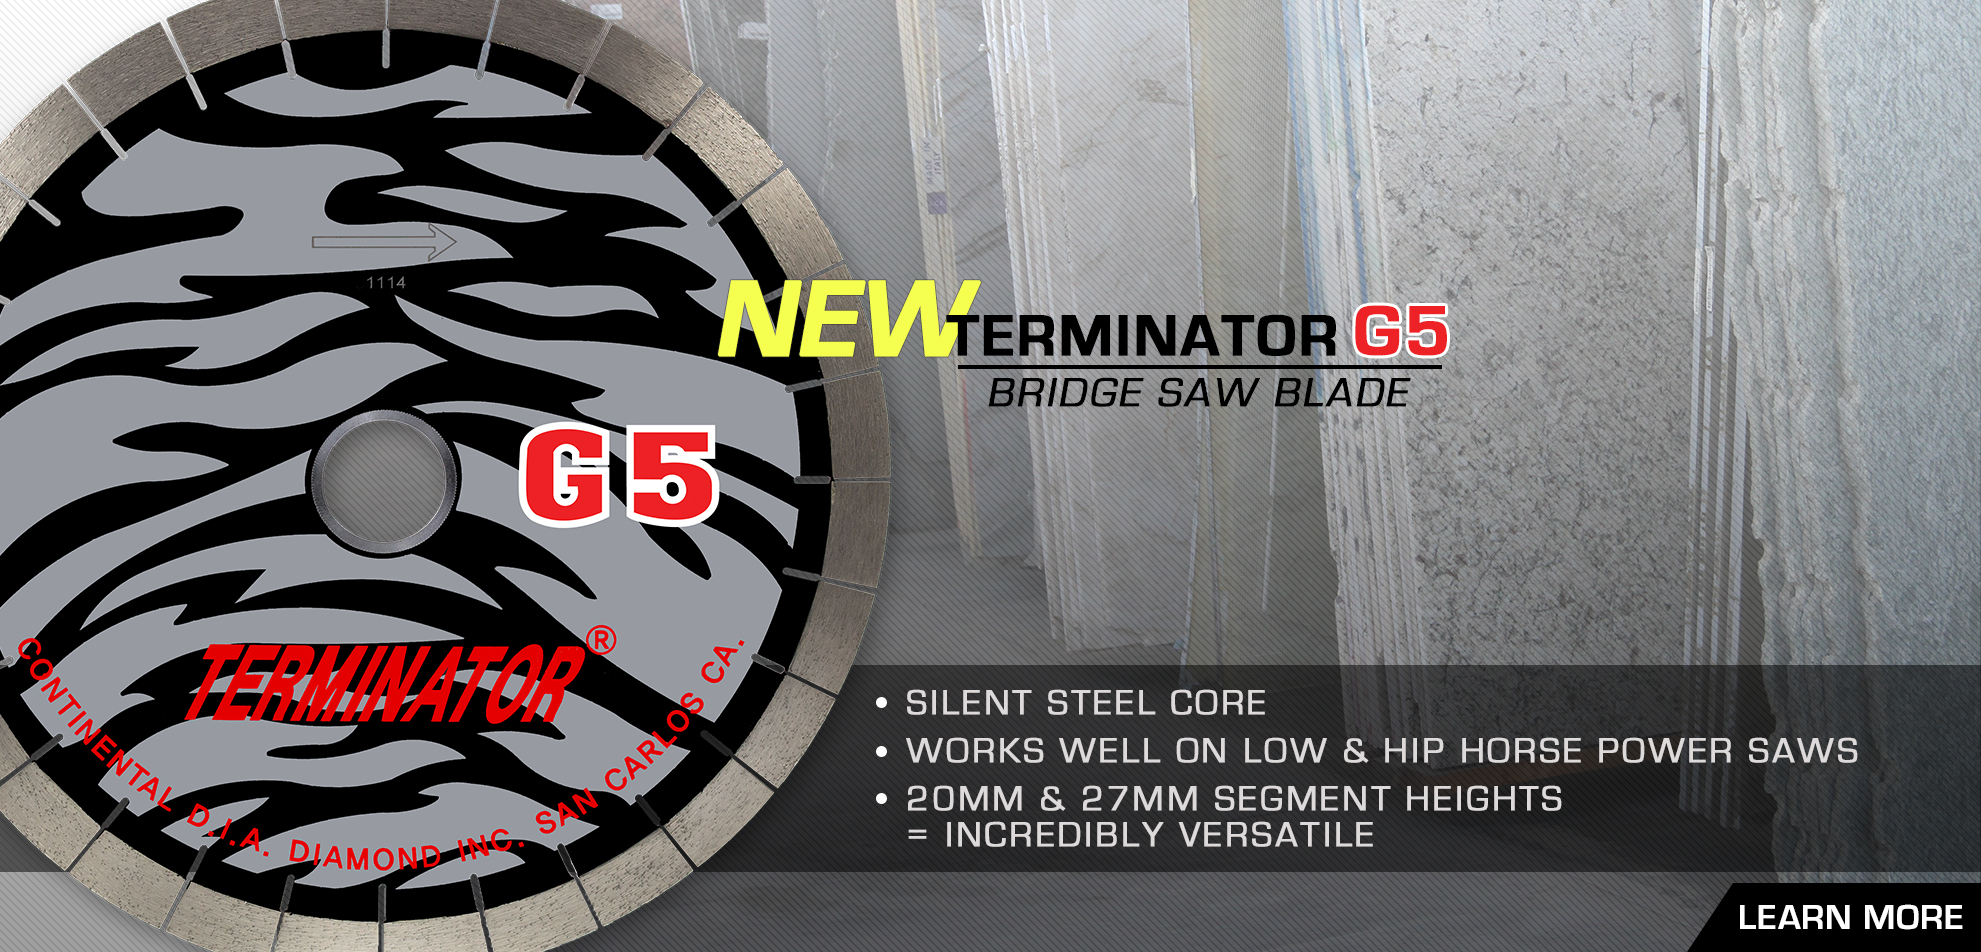 G5 Bridge Saw Blade